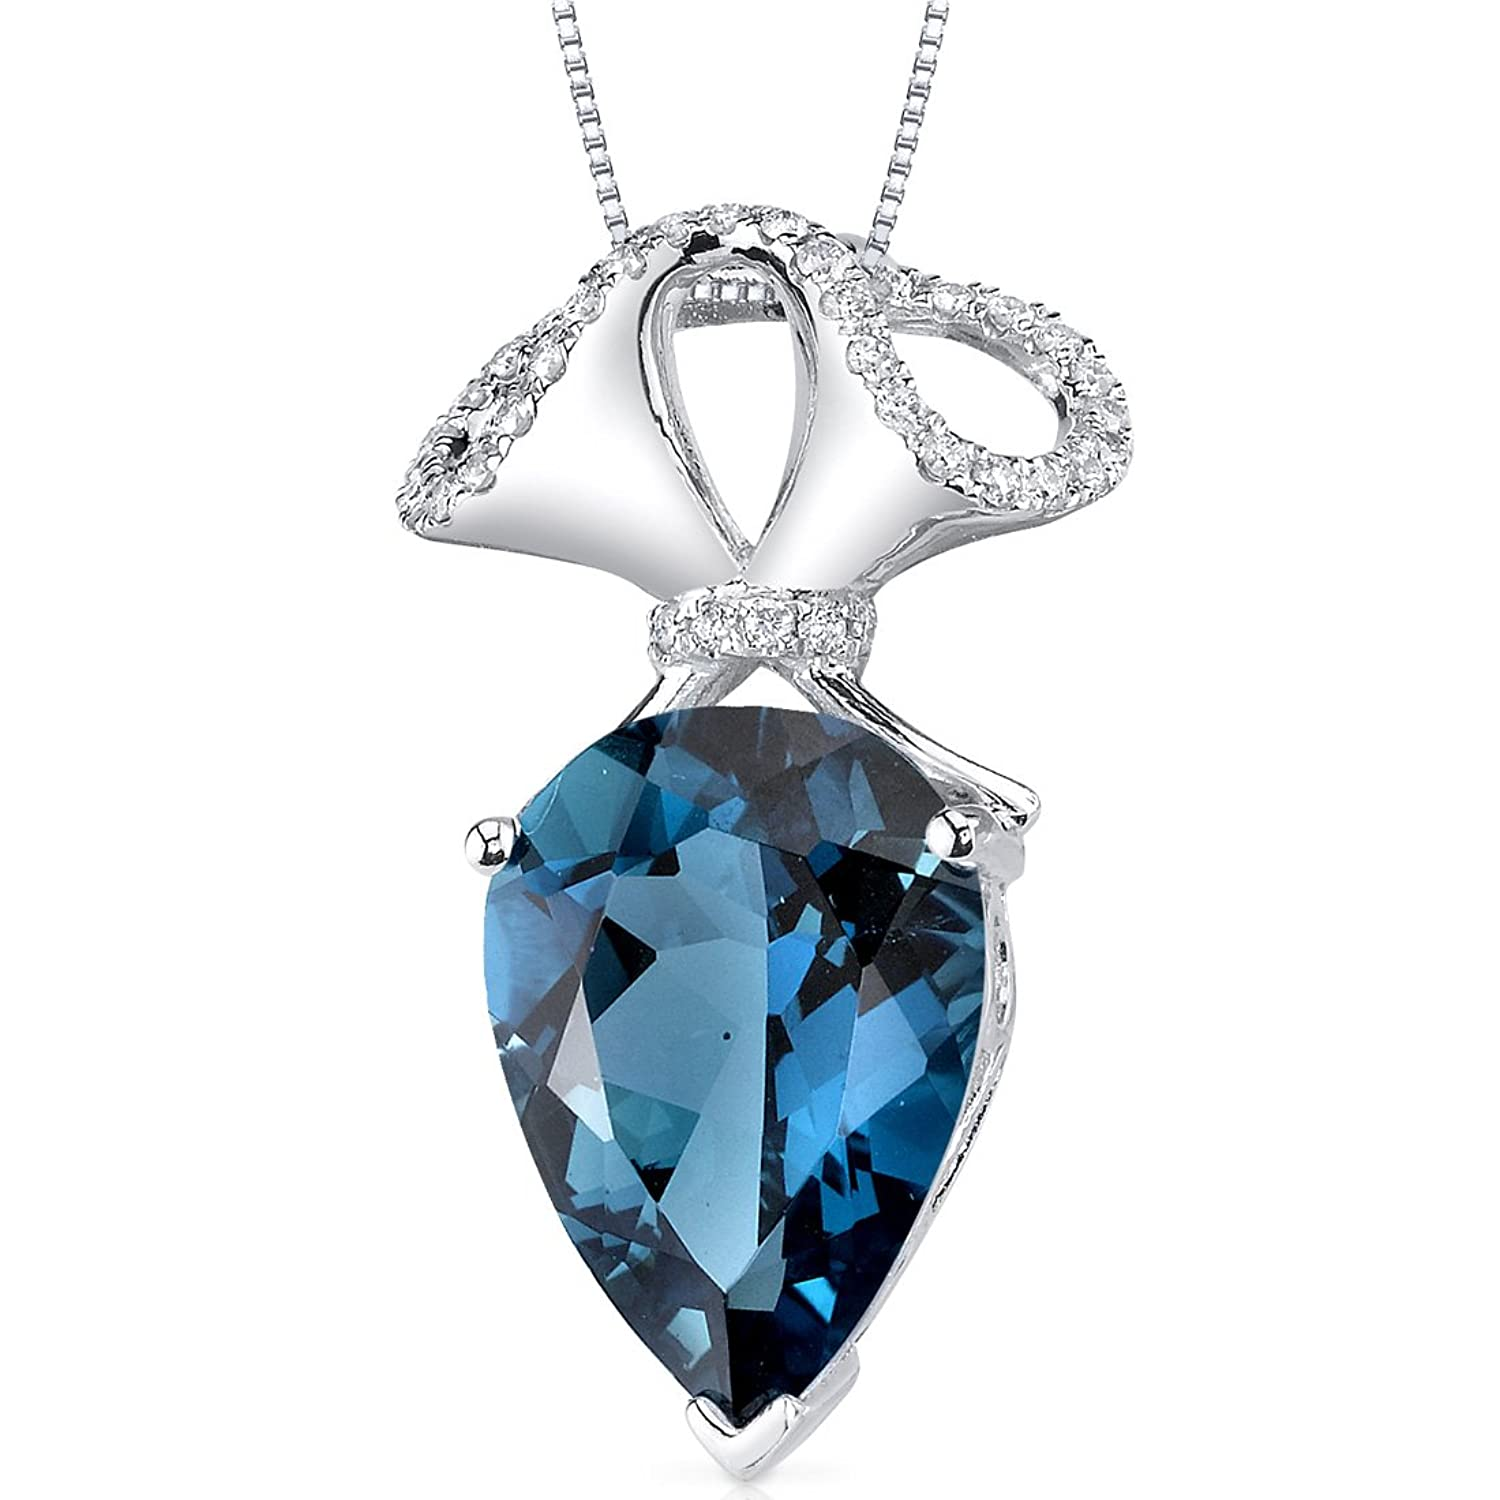 14 Karat White Gold Pear Shape 5.88 carats London Blue Topaz Diamond Pendant